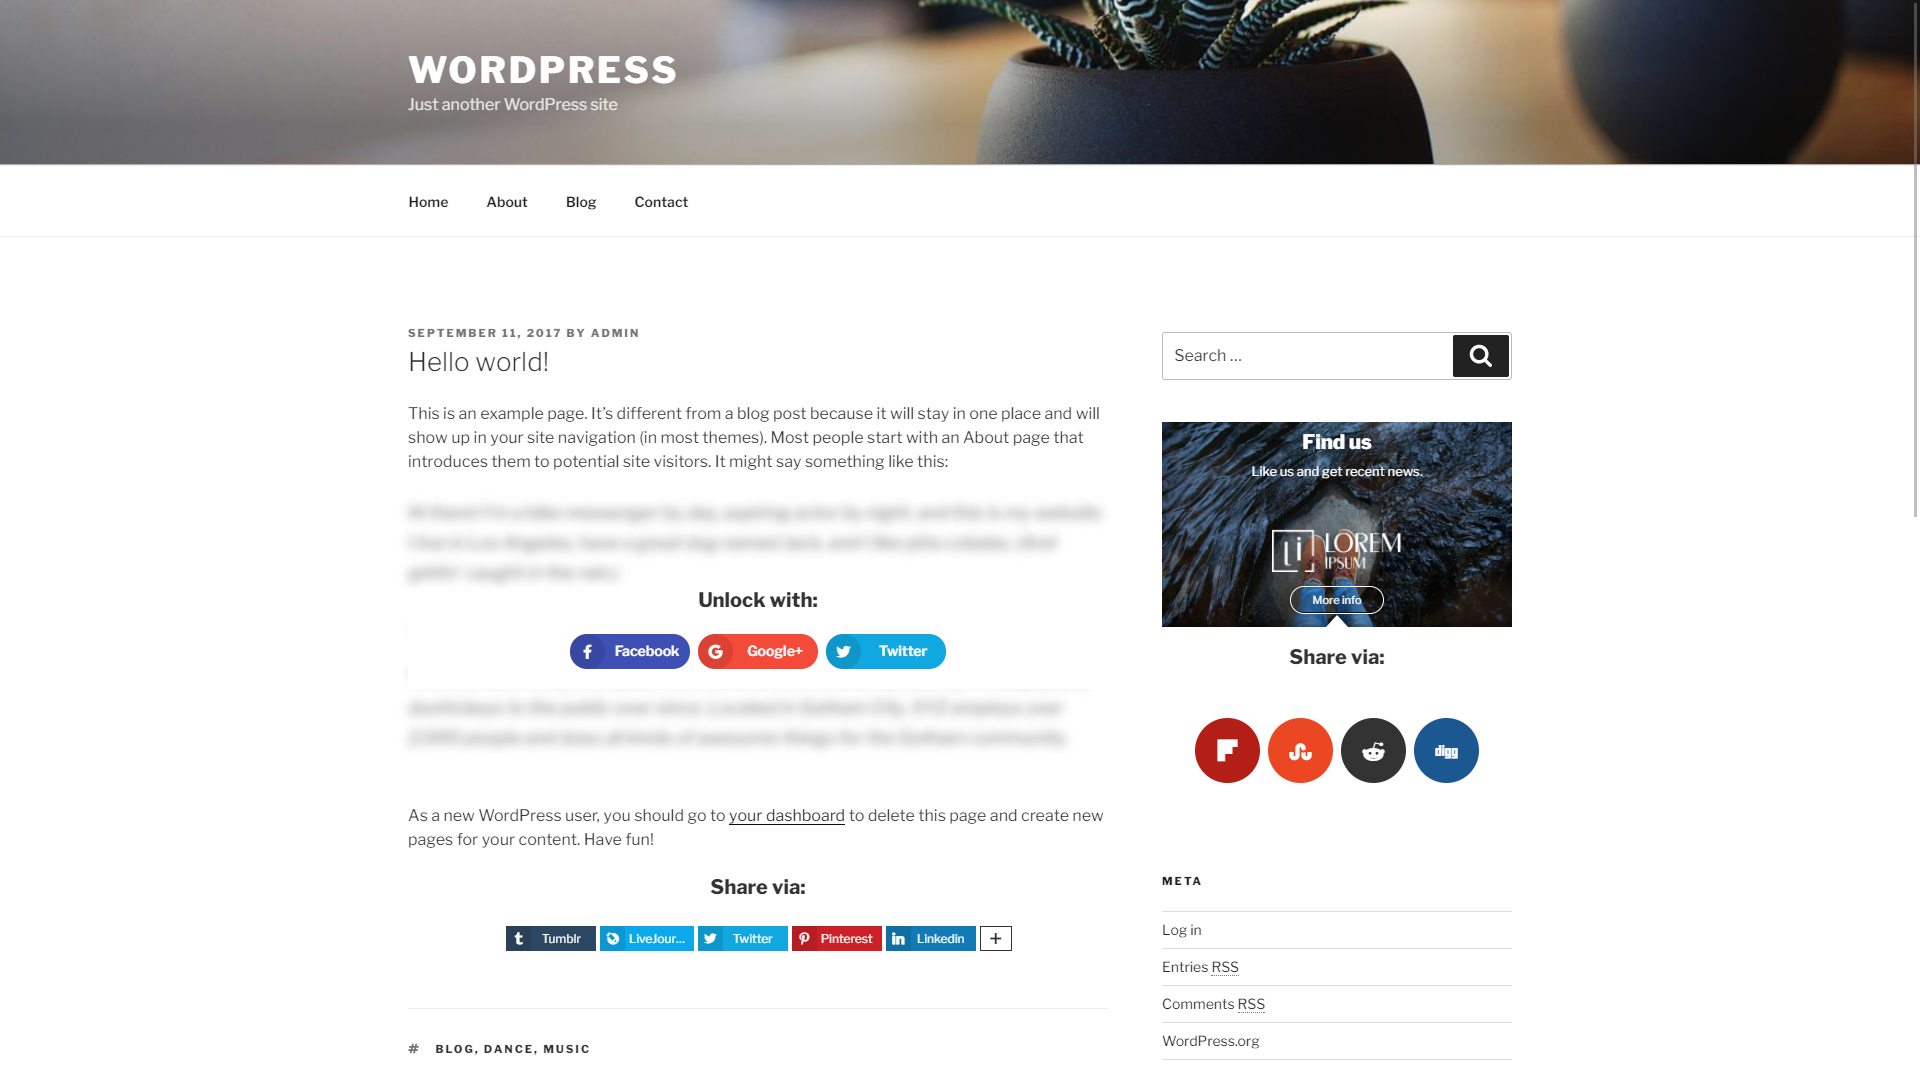 Aparg SmartSocial - WordPress Social Media Plugin - Aparg®